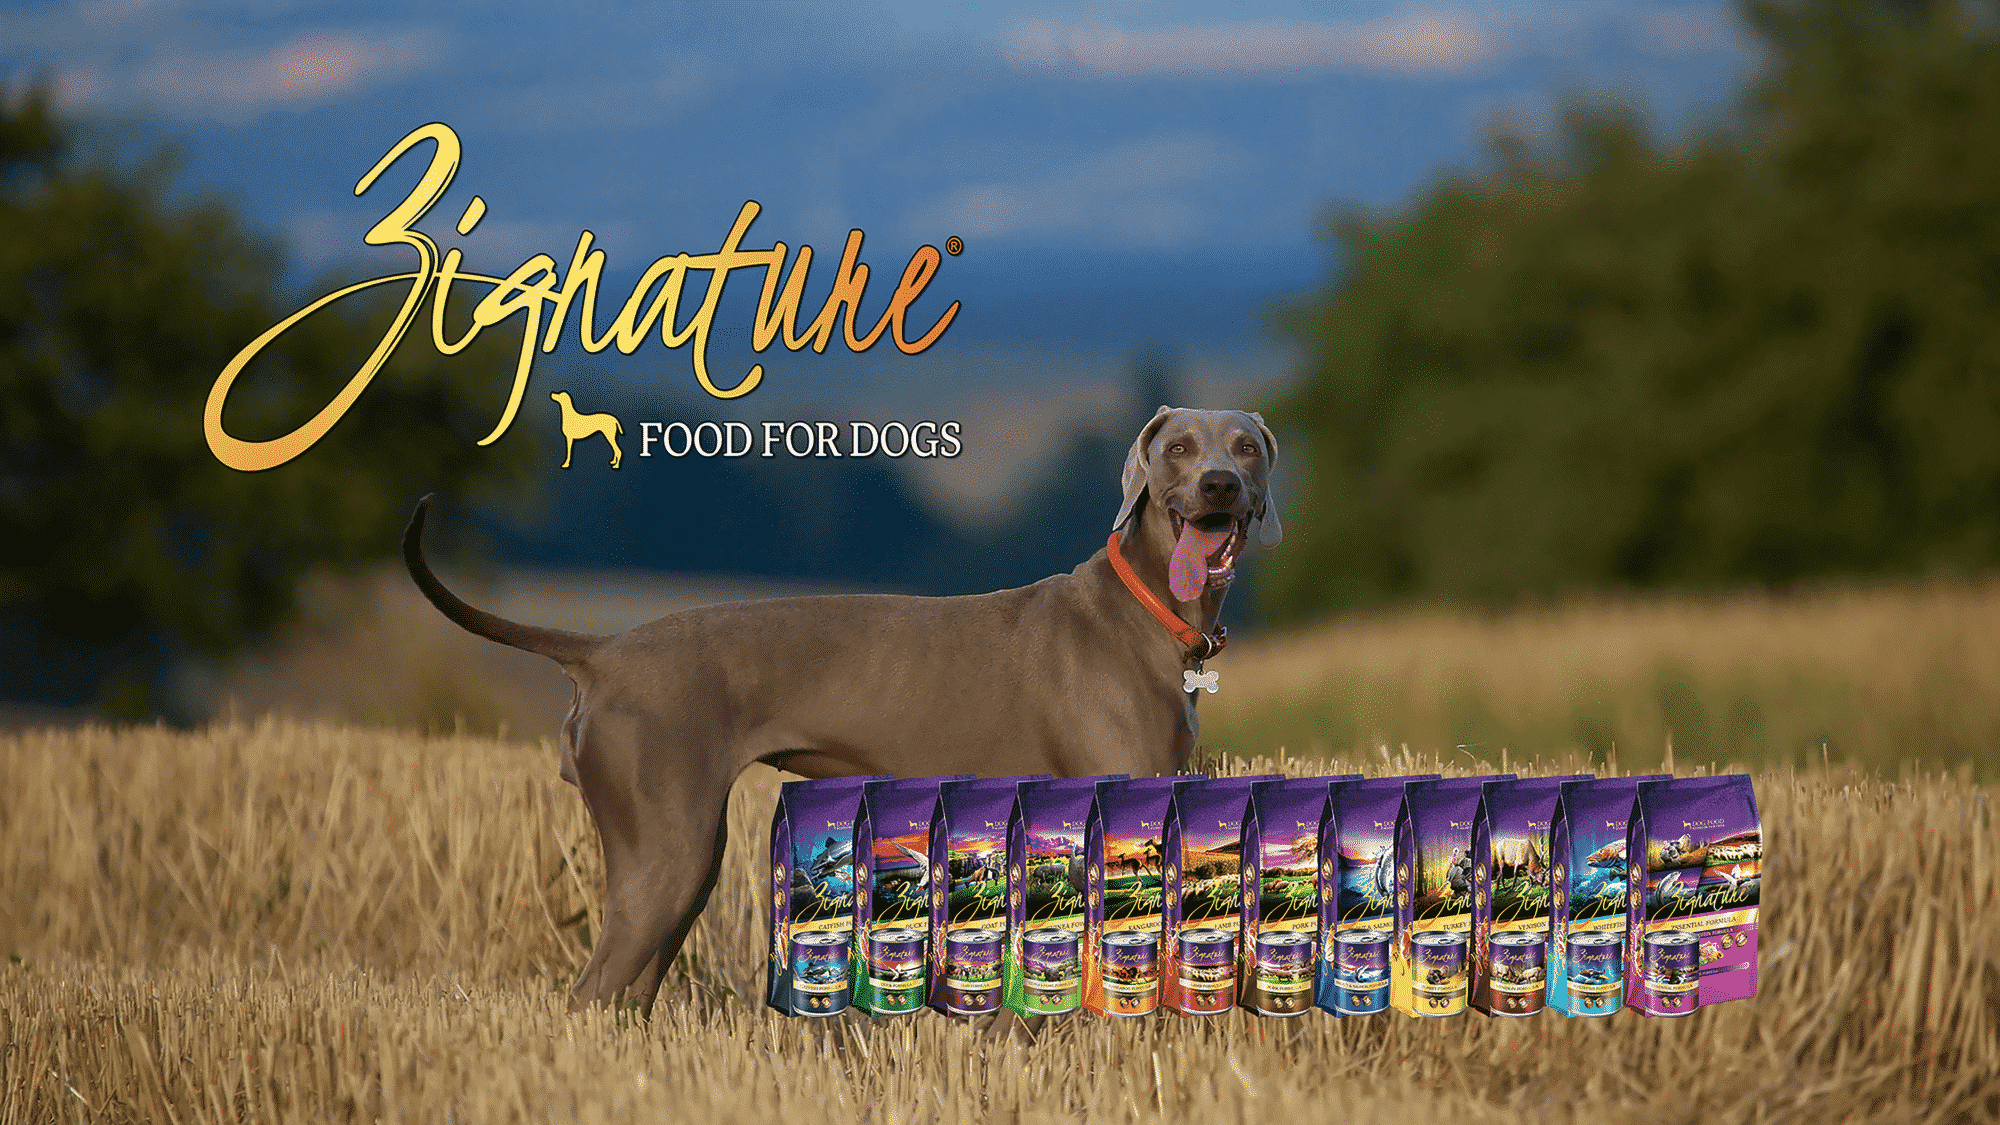 Home - Zignature Food For Dogs